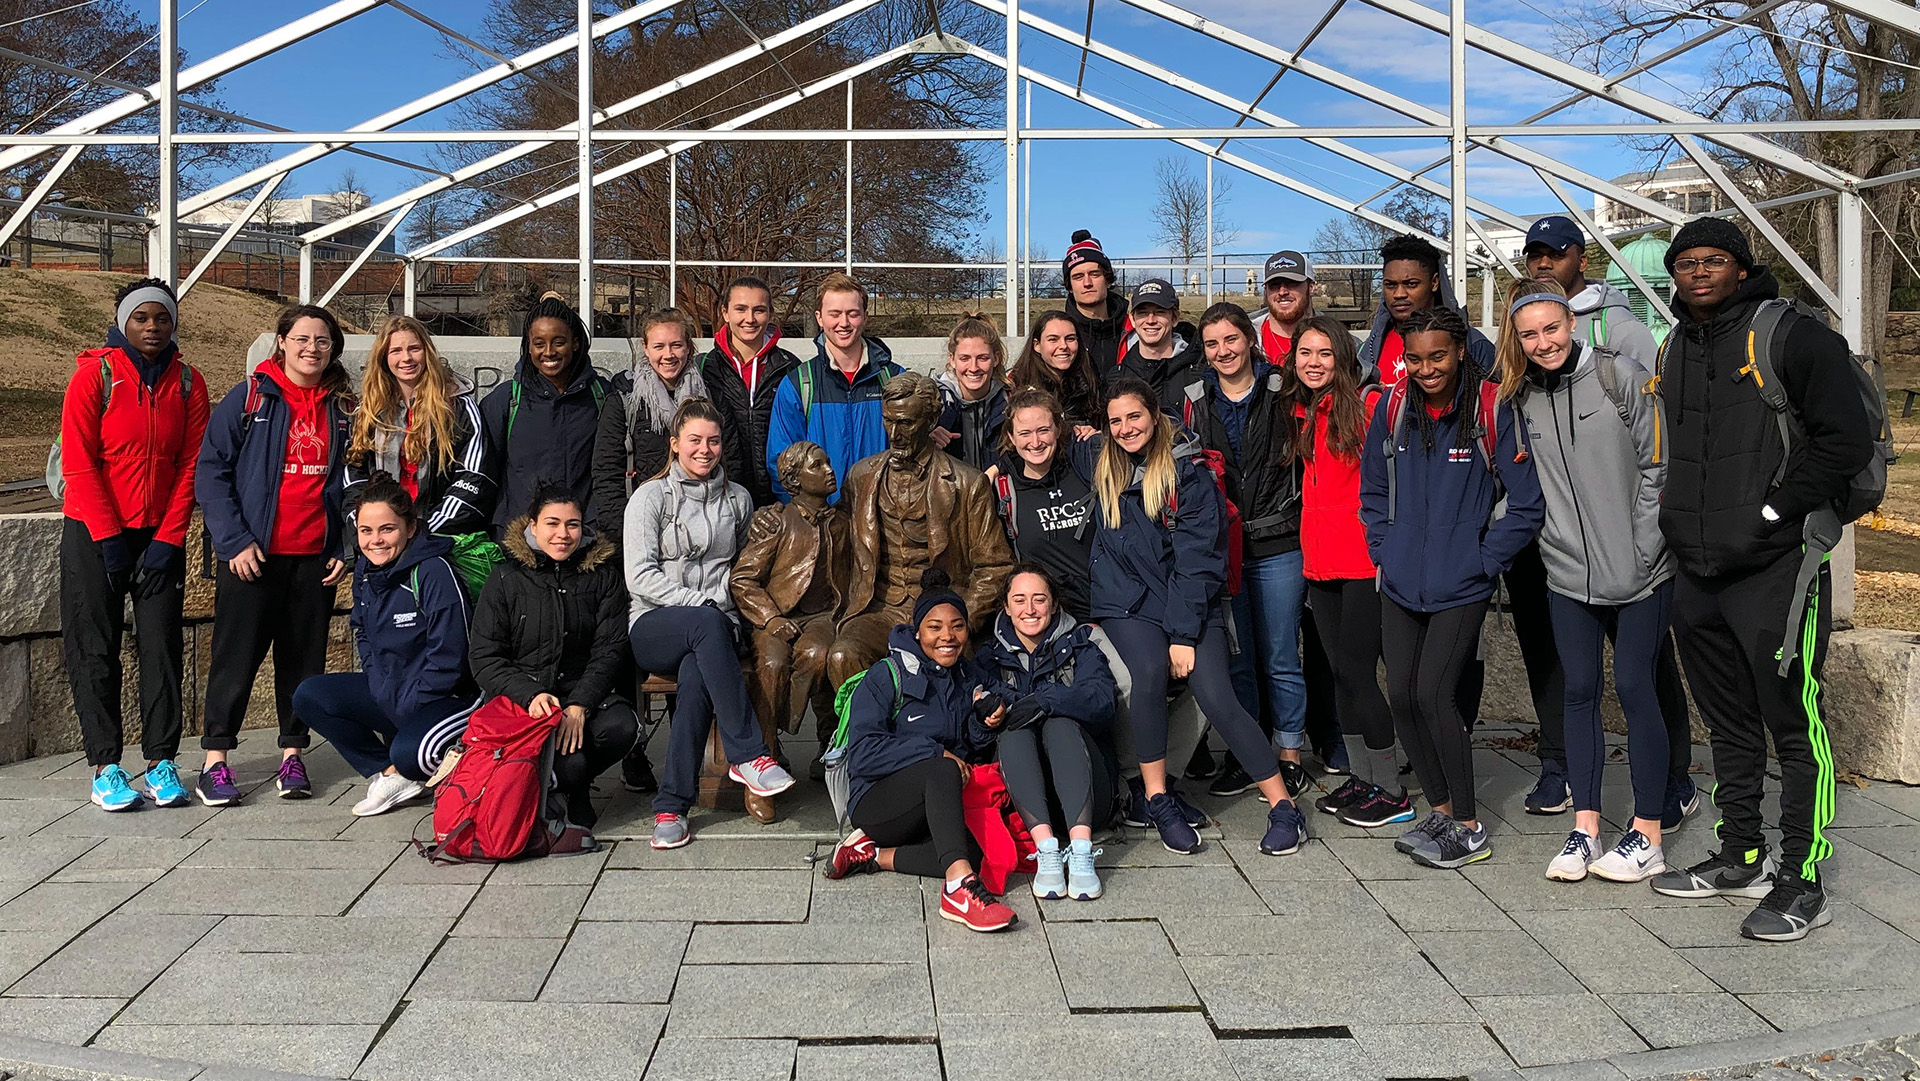 Spider Leadership Immersion: An Exploration into Richmond's Legacy